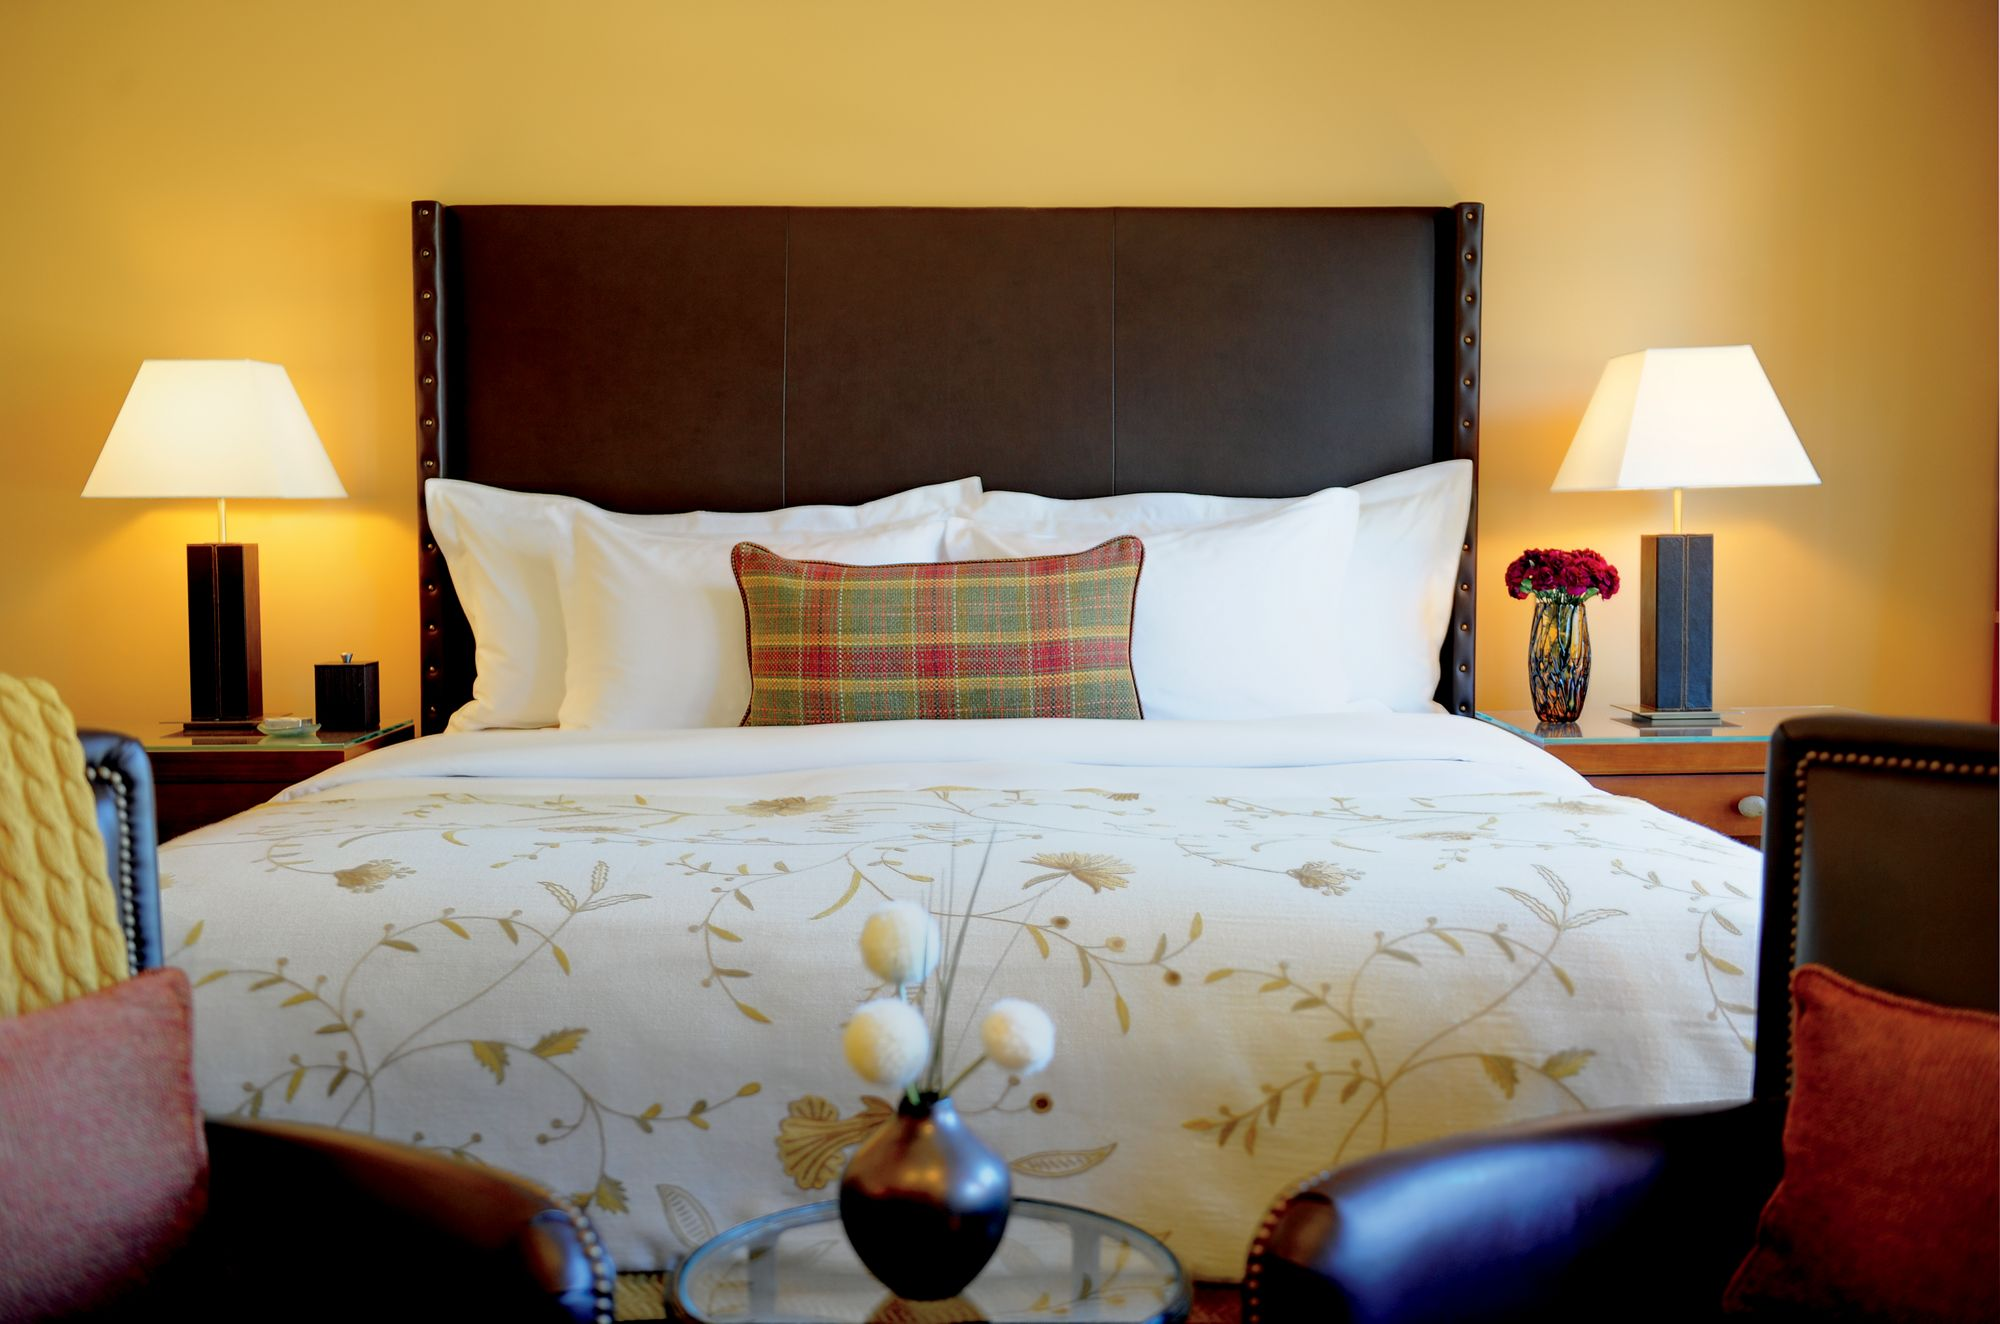 A double bed with two side tables and a small seating area at its foot